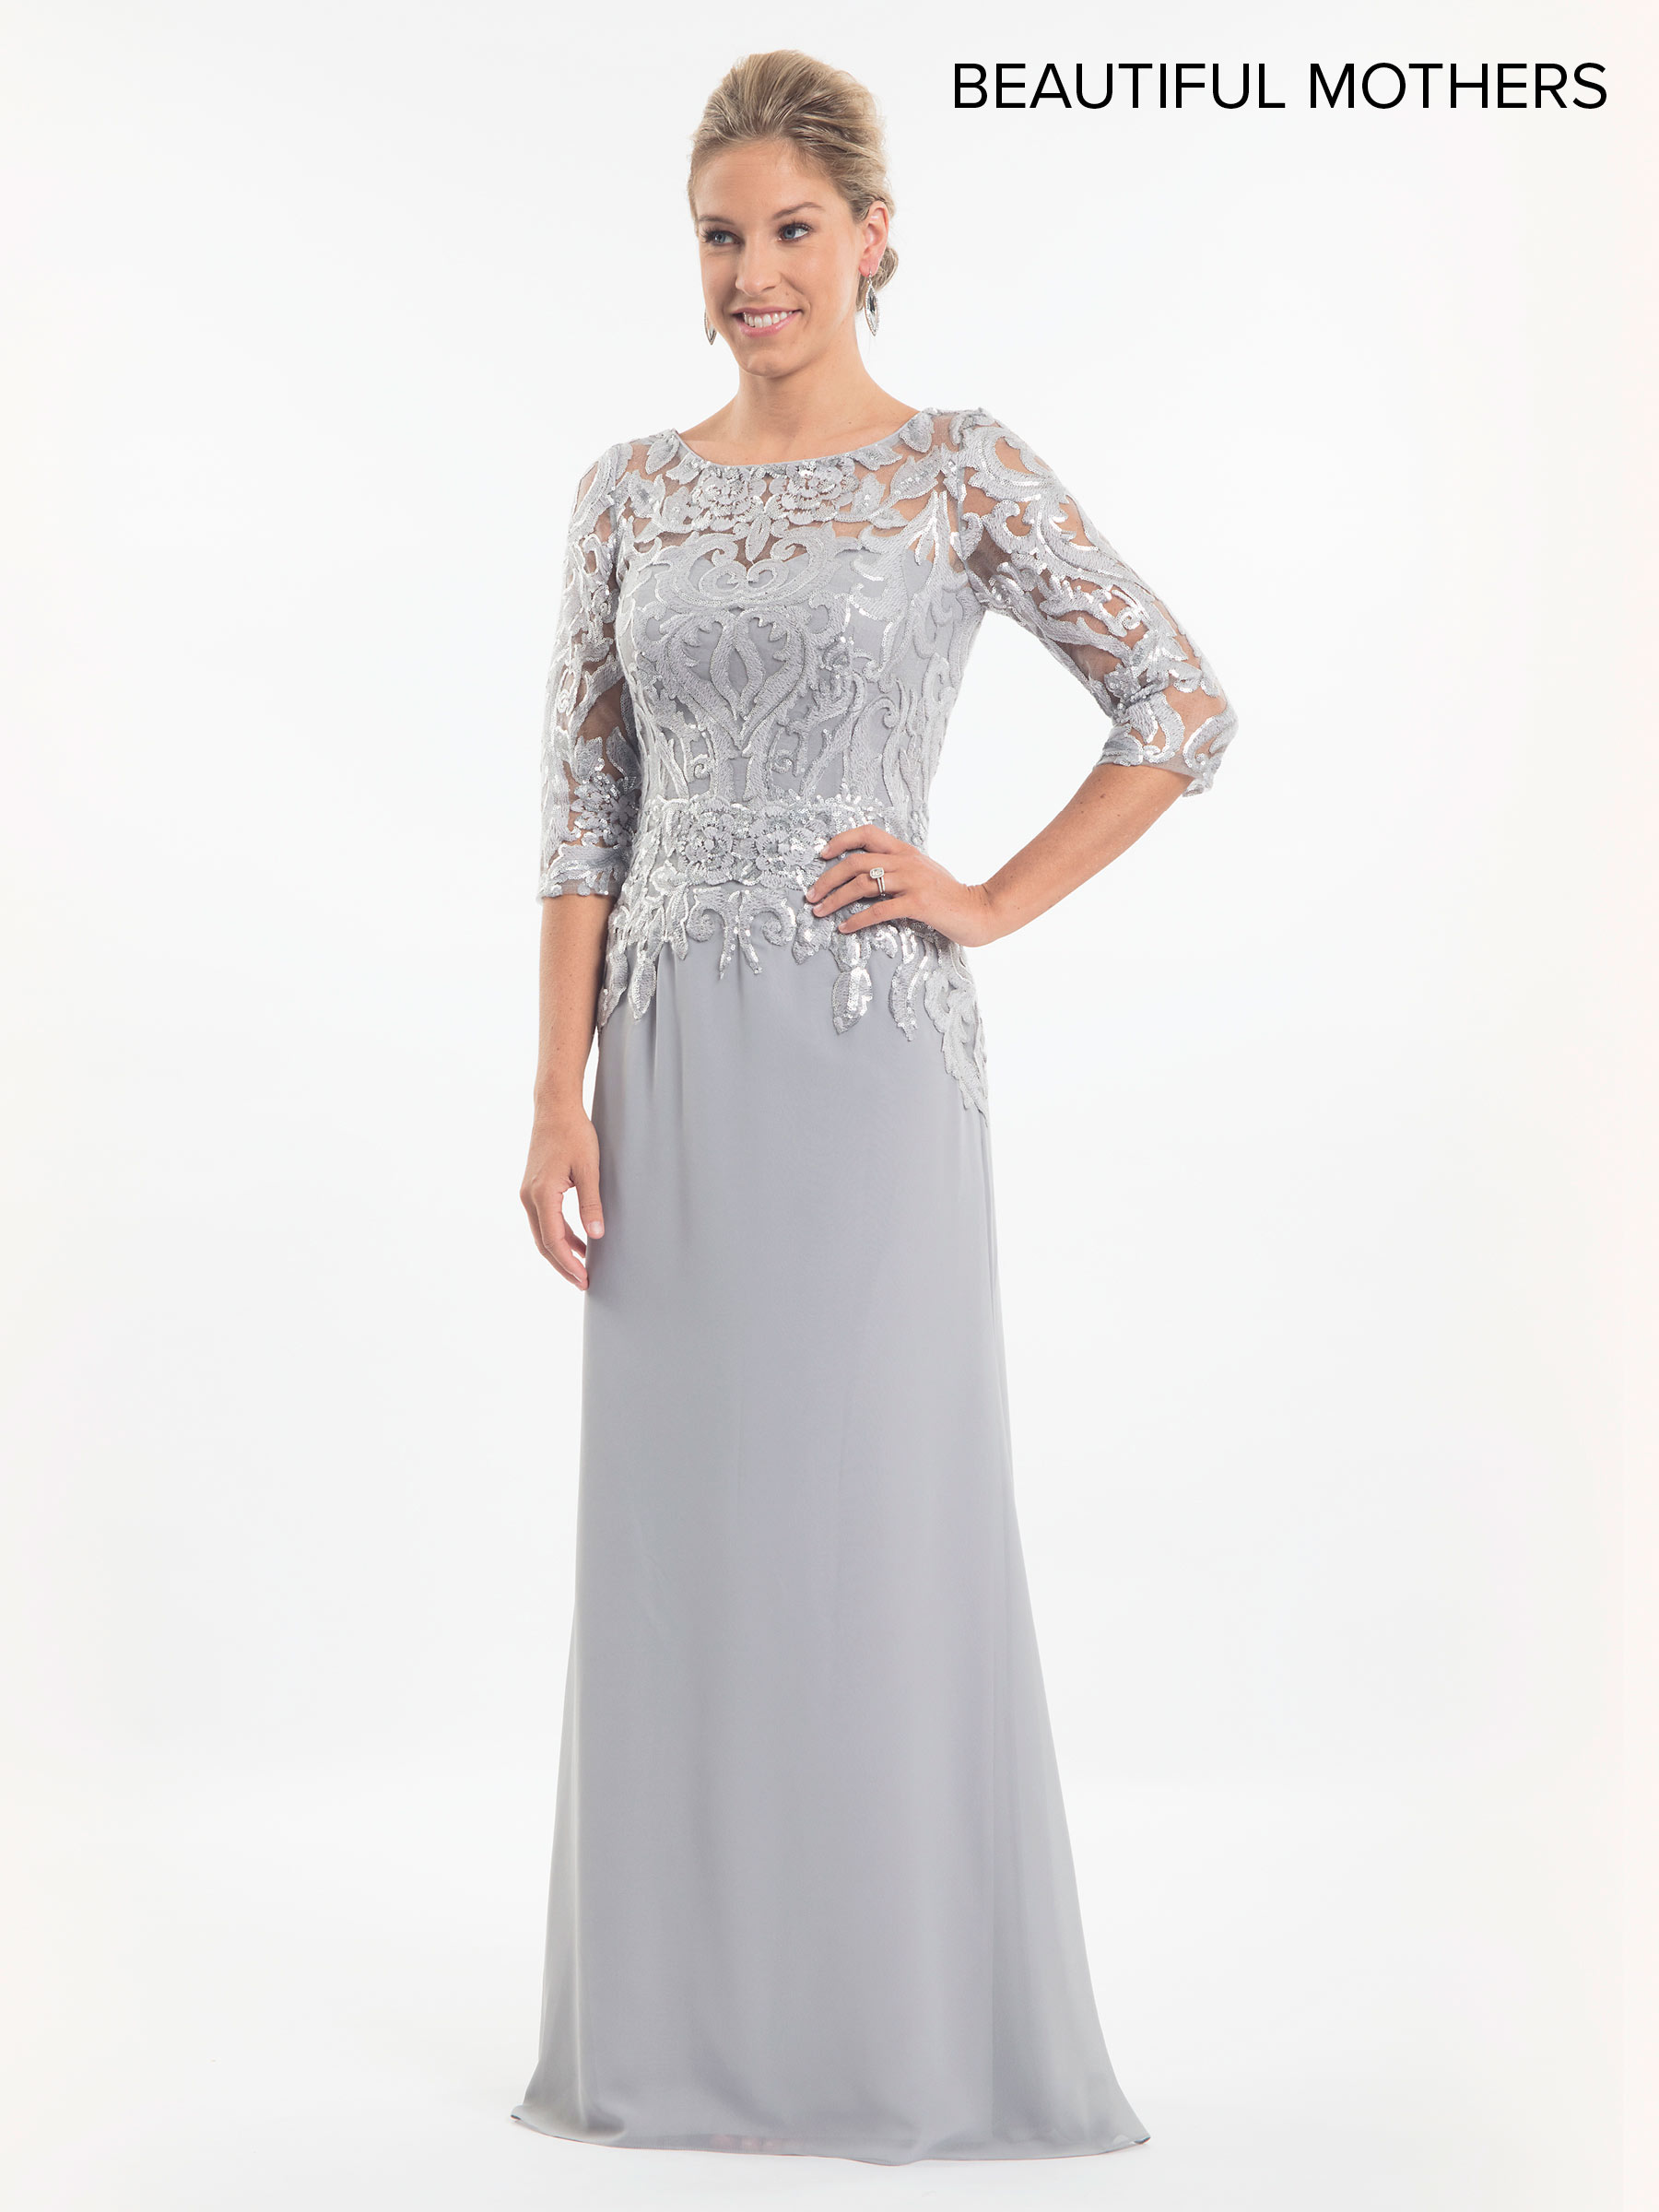 Mother Of The Bride Dresses | Beautiful Mothers | Style - MB8011